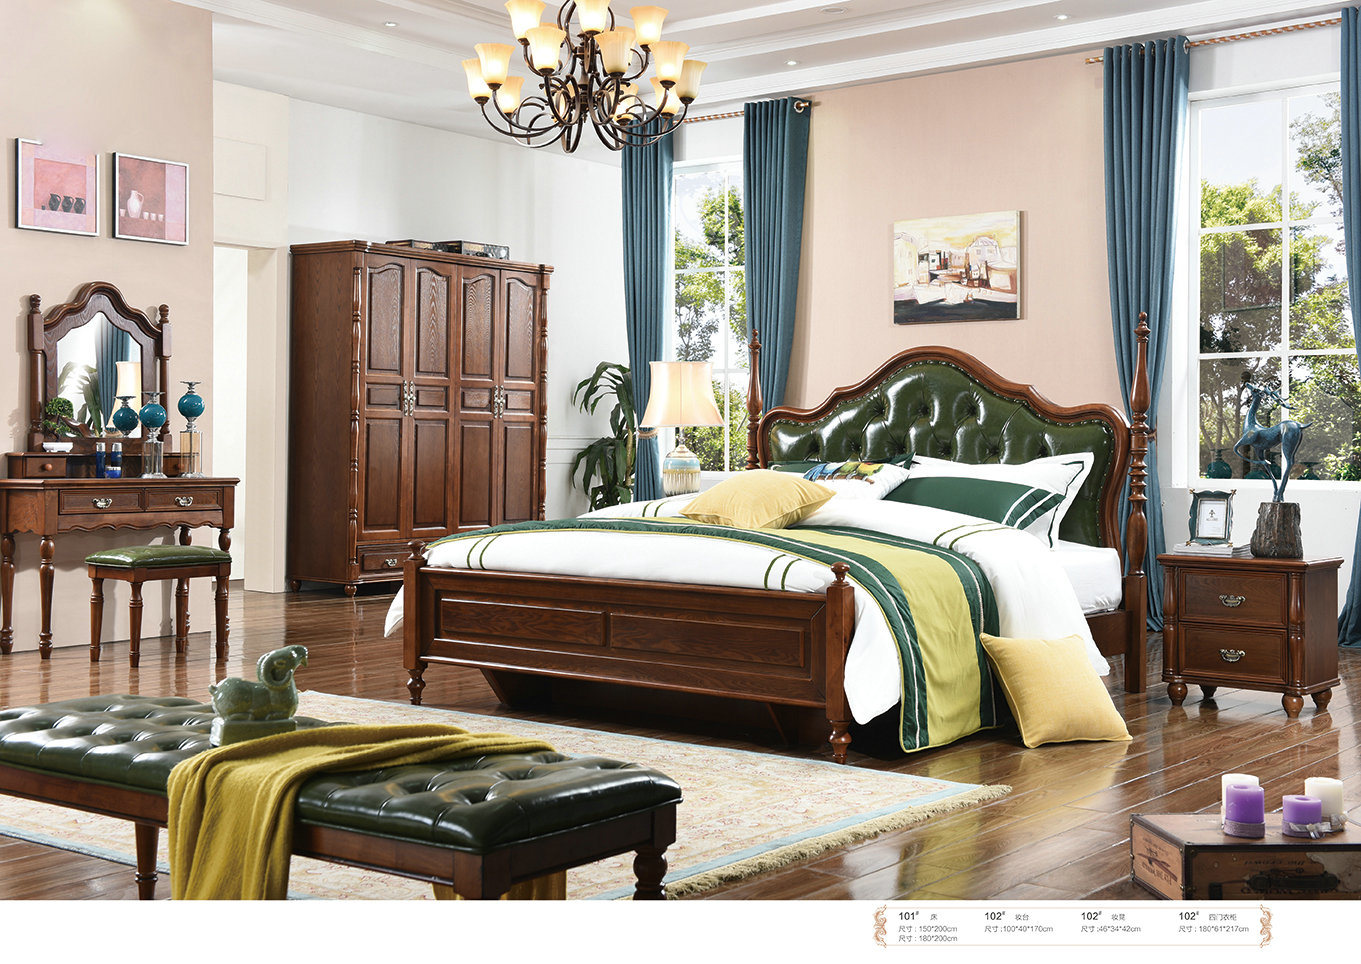 American Style Bedroom Furniture Design Inspirations Home Design